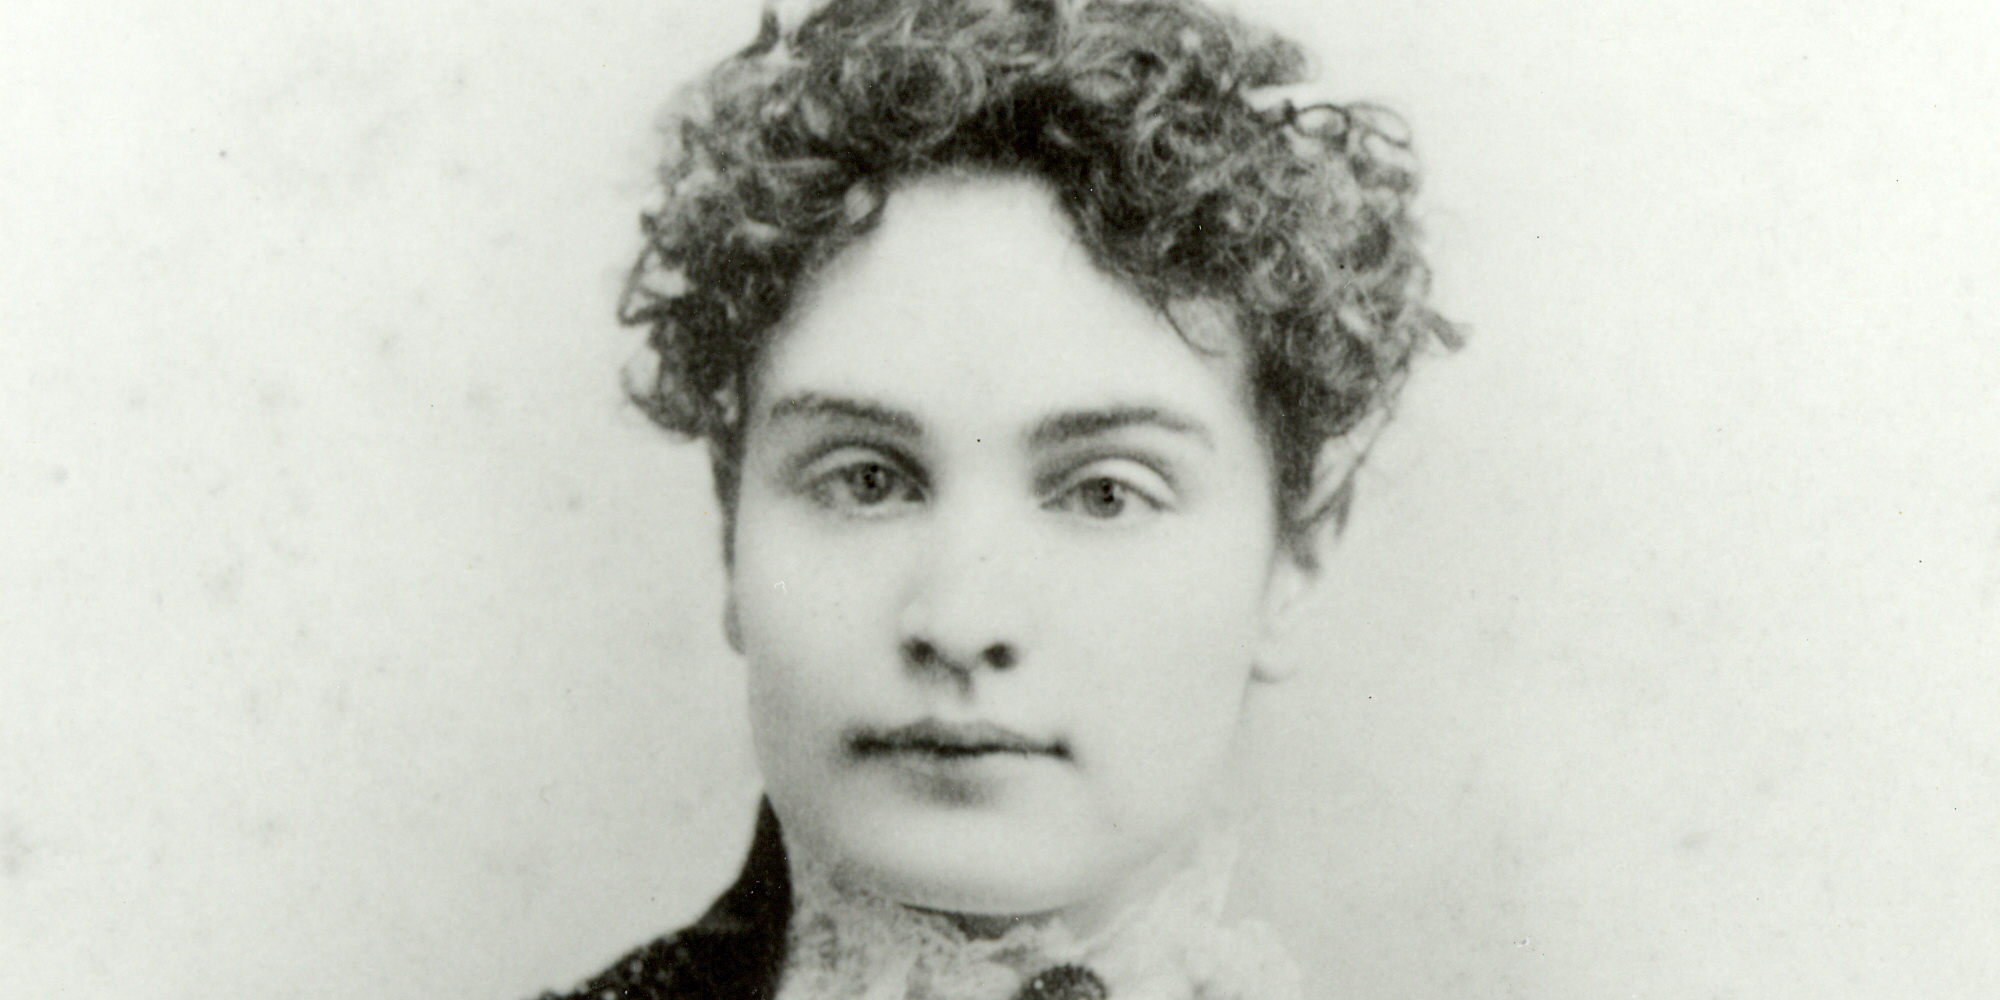 helen keller biography Helen keller biography showing all 43 items mini bio (1) helen keller contracted a virulent childhood disease which resulted in complete loss of sight and hearing at nineteen months.